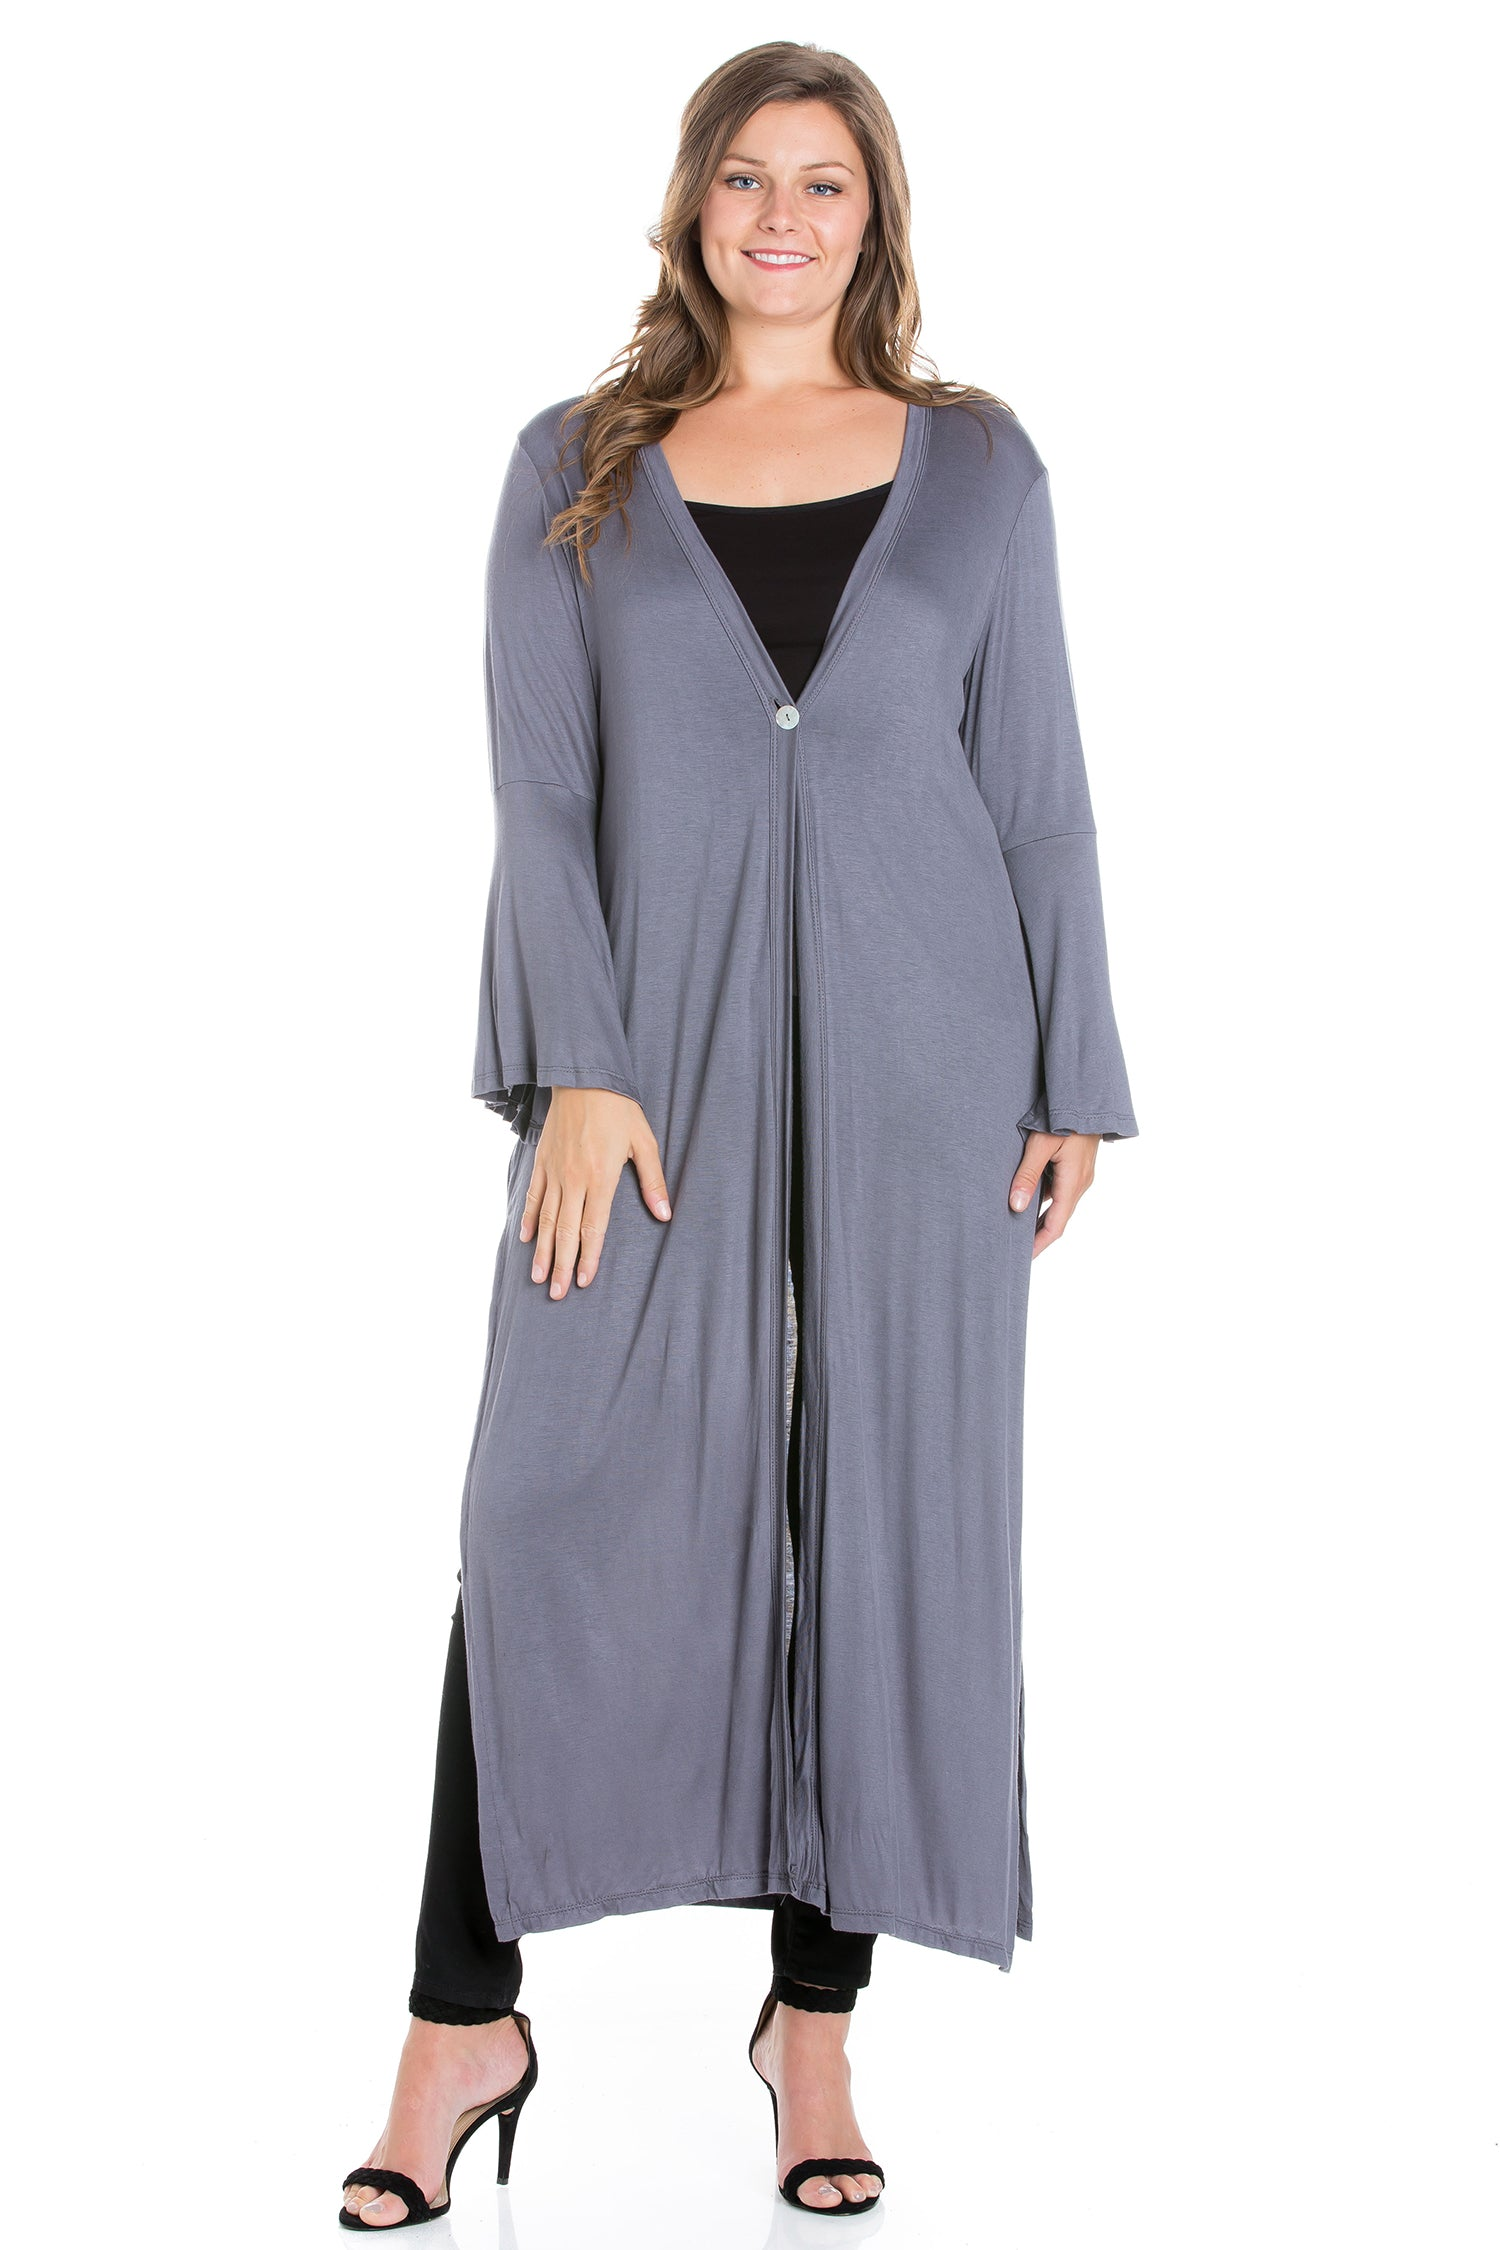 24seven Comfort Apparel Bell Sleeve Maxi Length Plus Size Cardigan Duster-SHRUGS-24Seven Comfort Apparel-CHARCOAL-1X-24/7 Comfort Apparel